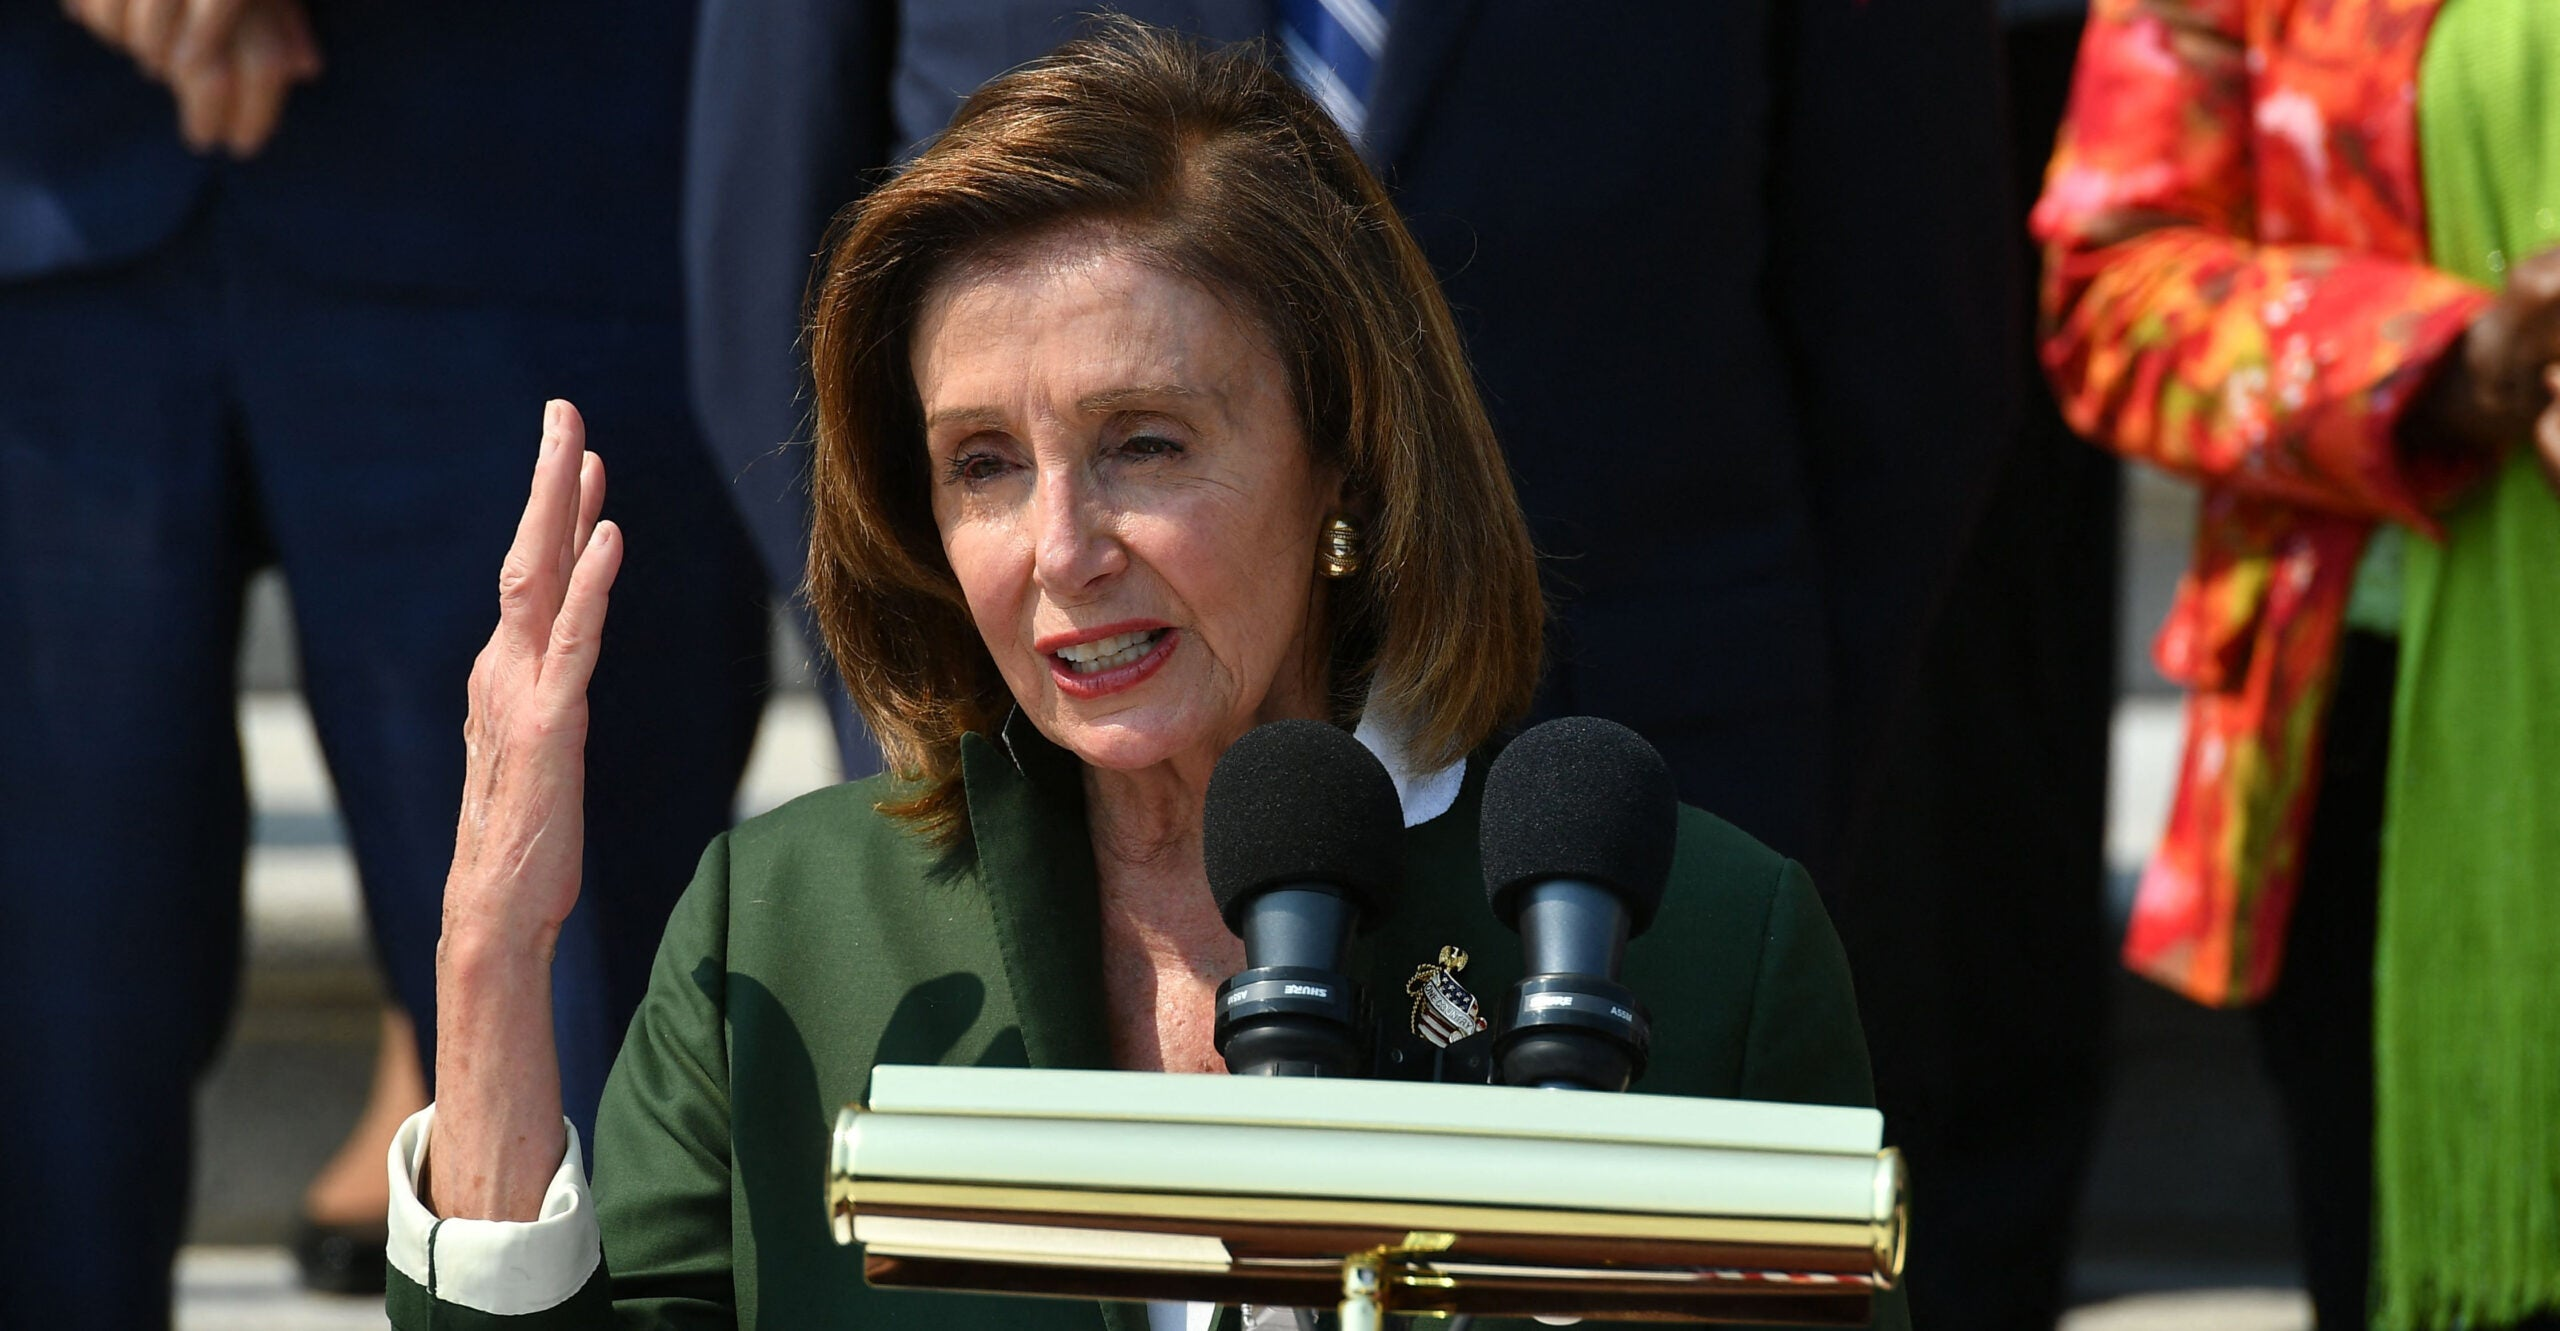 8 Things You Need to Know About Democrats' Tax Increase Bill